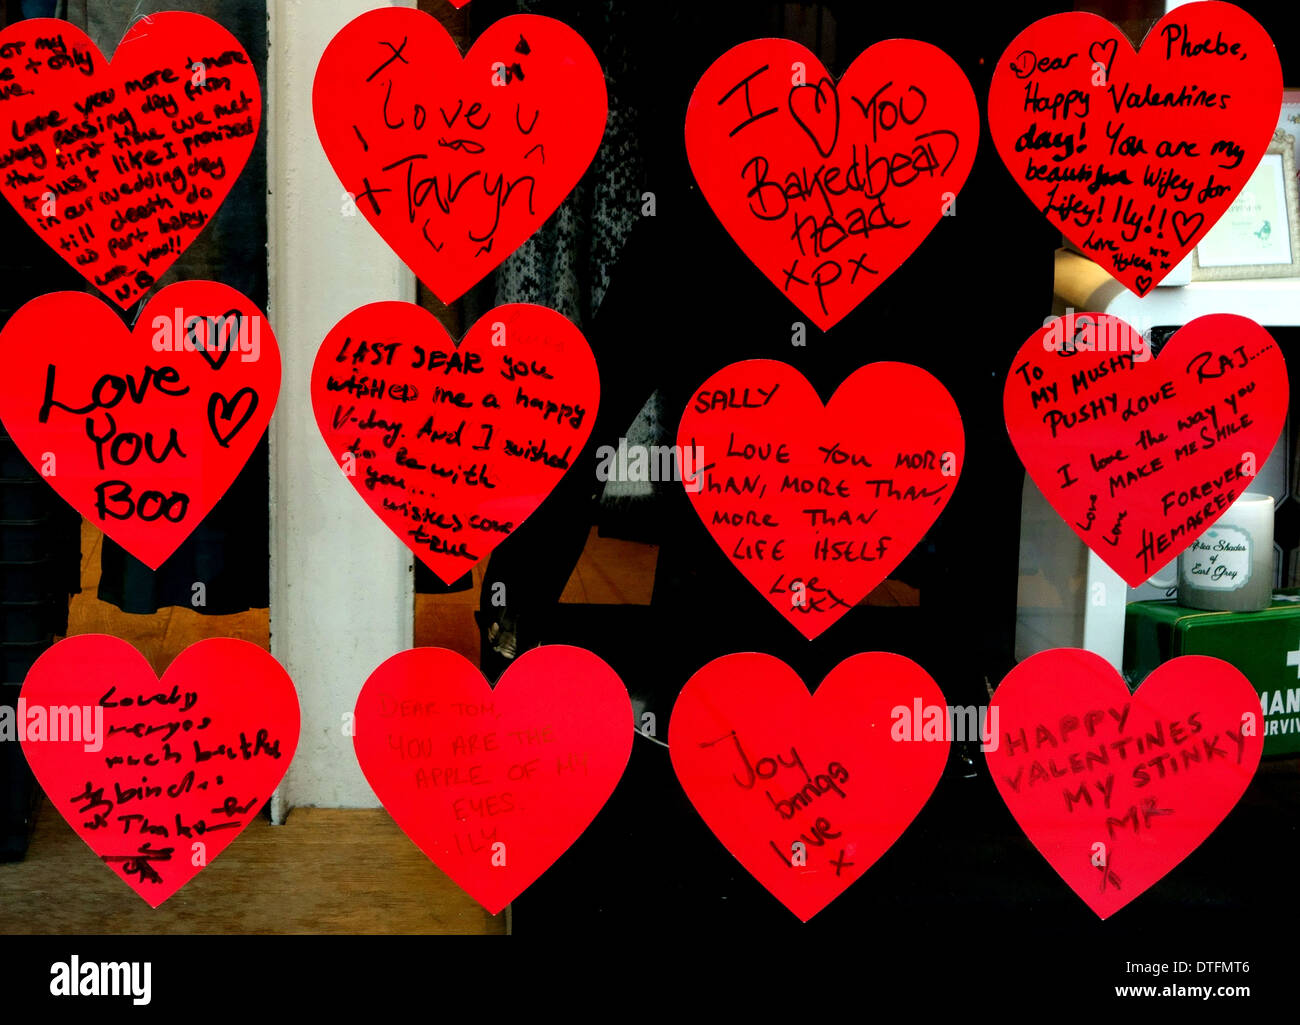 valentine u0027s day messages in shop window display london stock